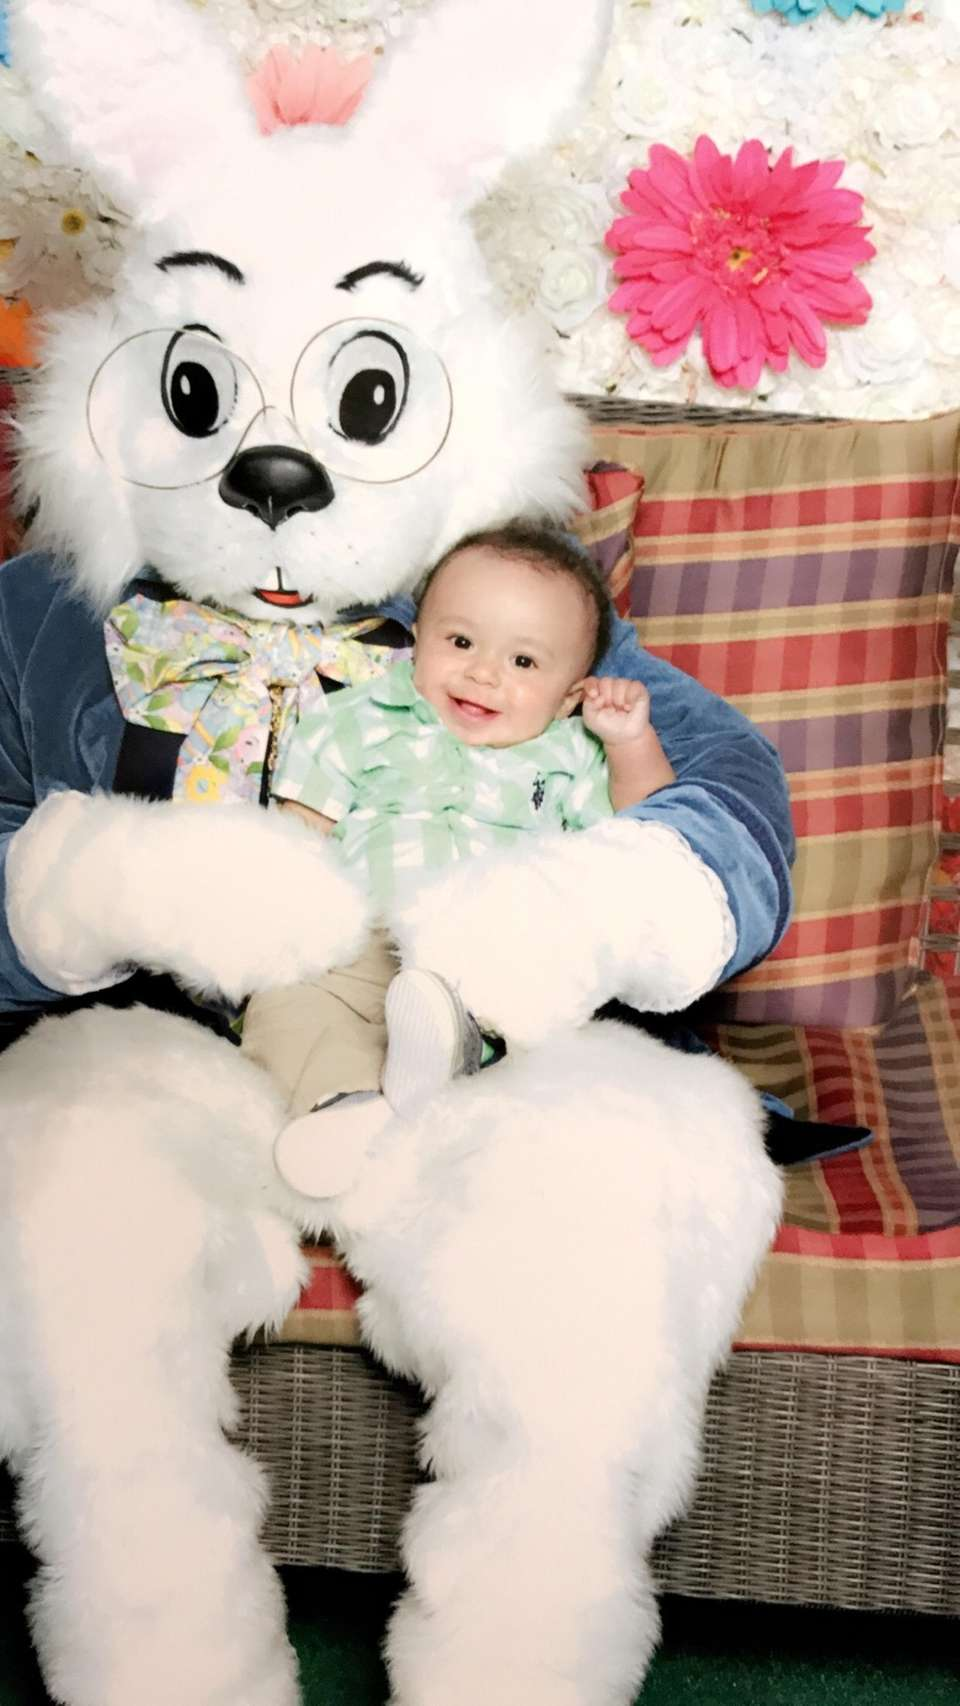 My 7 month old grandson Marcus 1st Easter